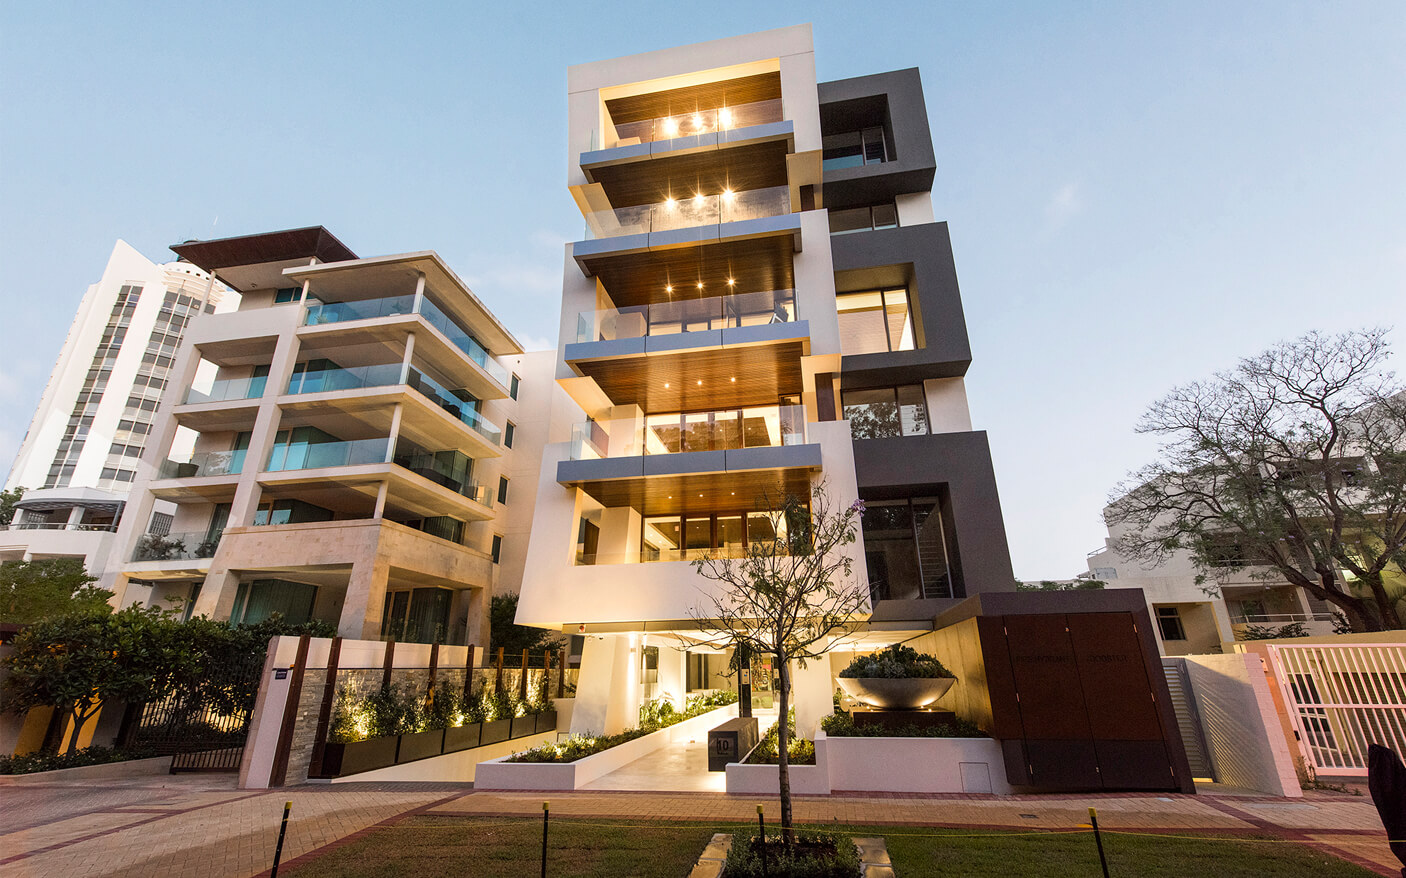 10 bellevue residences giorgi for 18 bellevue terrace west perth